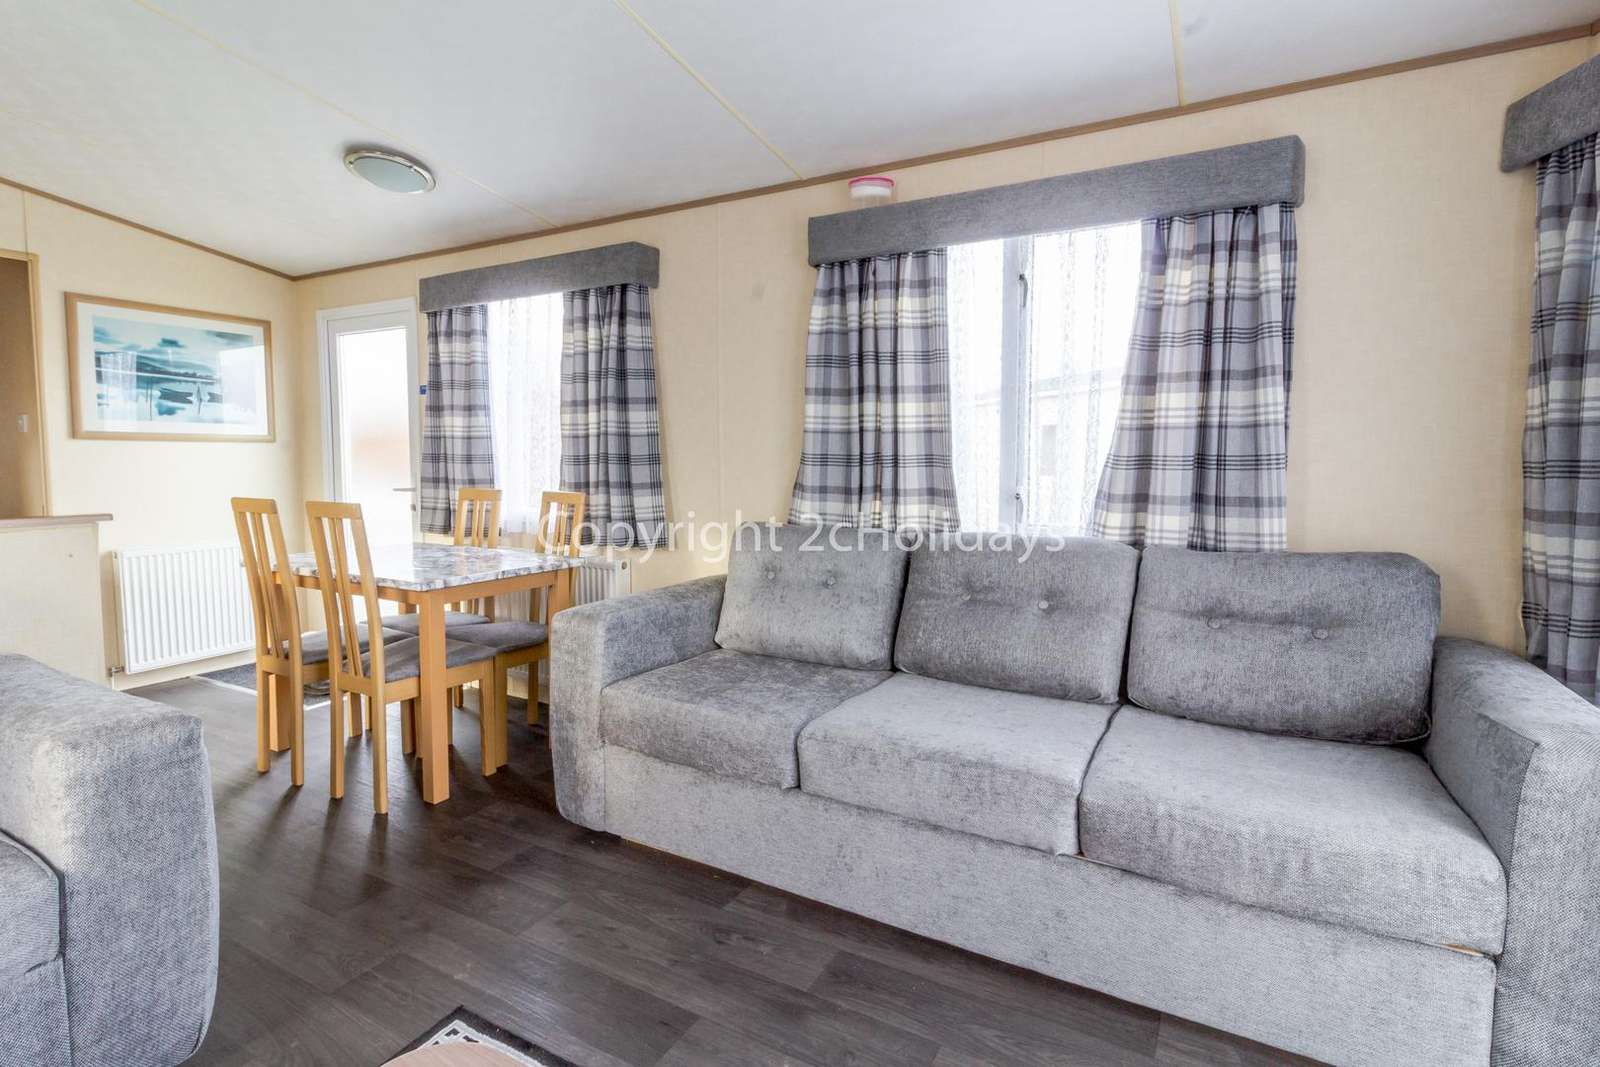 Very cosy and spacious open plan living and dining area, ideal for families